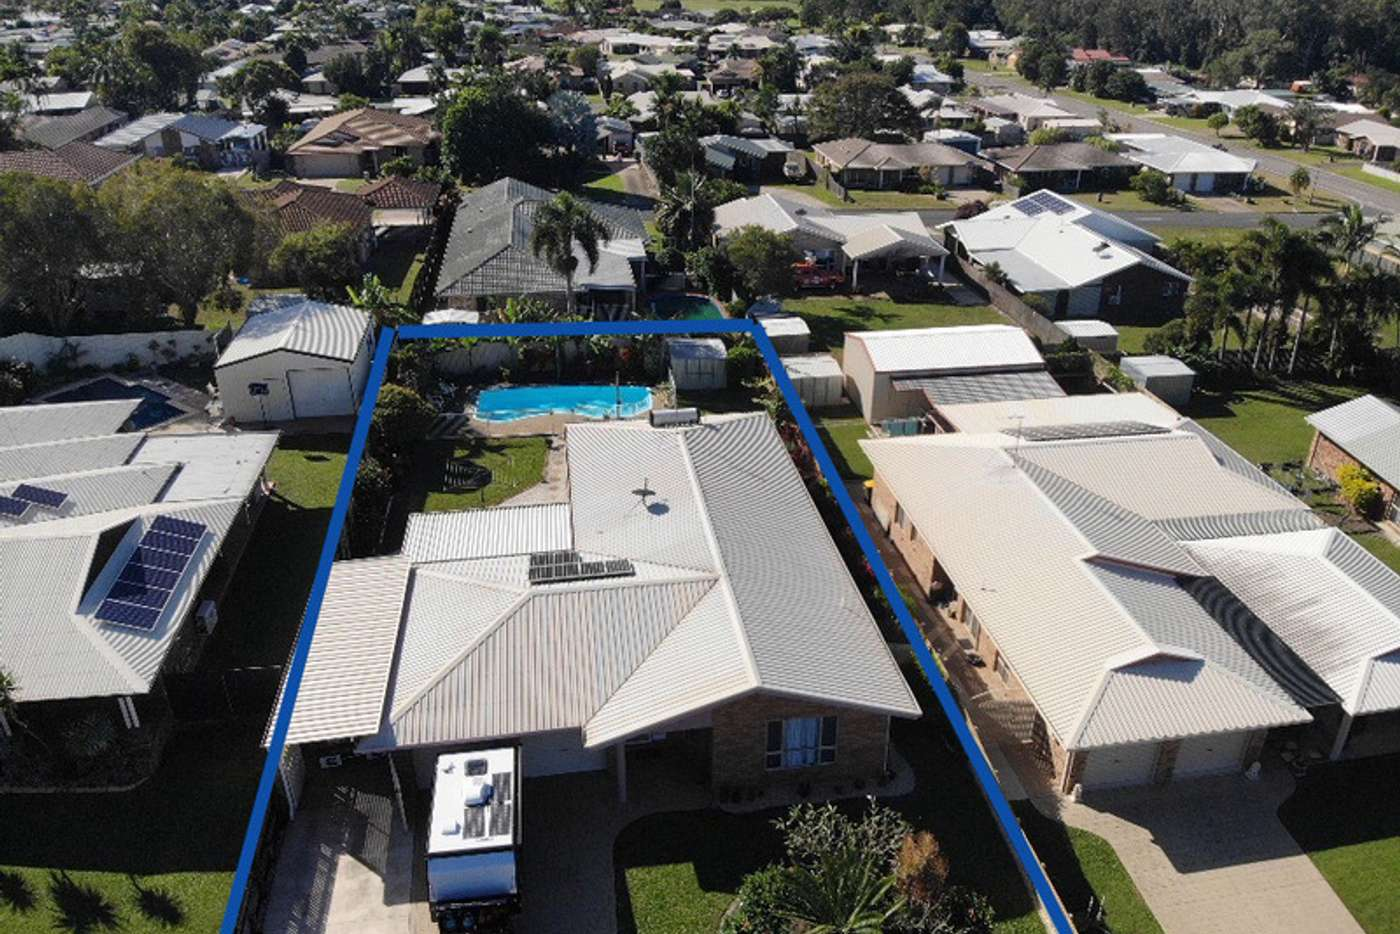 Main view of Homely house listing, 10 Bankswood Street, Beaconsfield QLD 4740